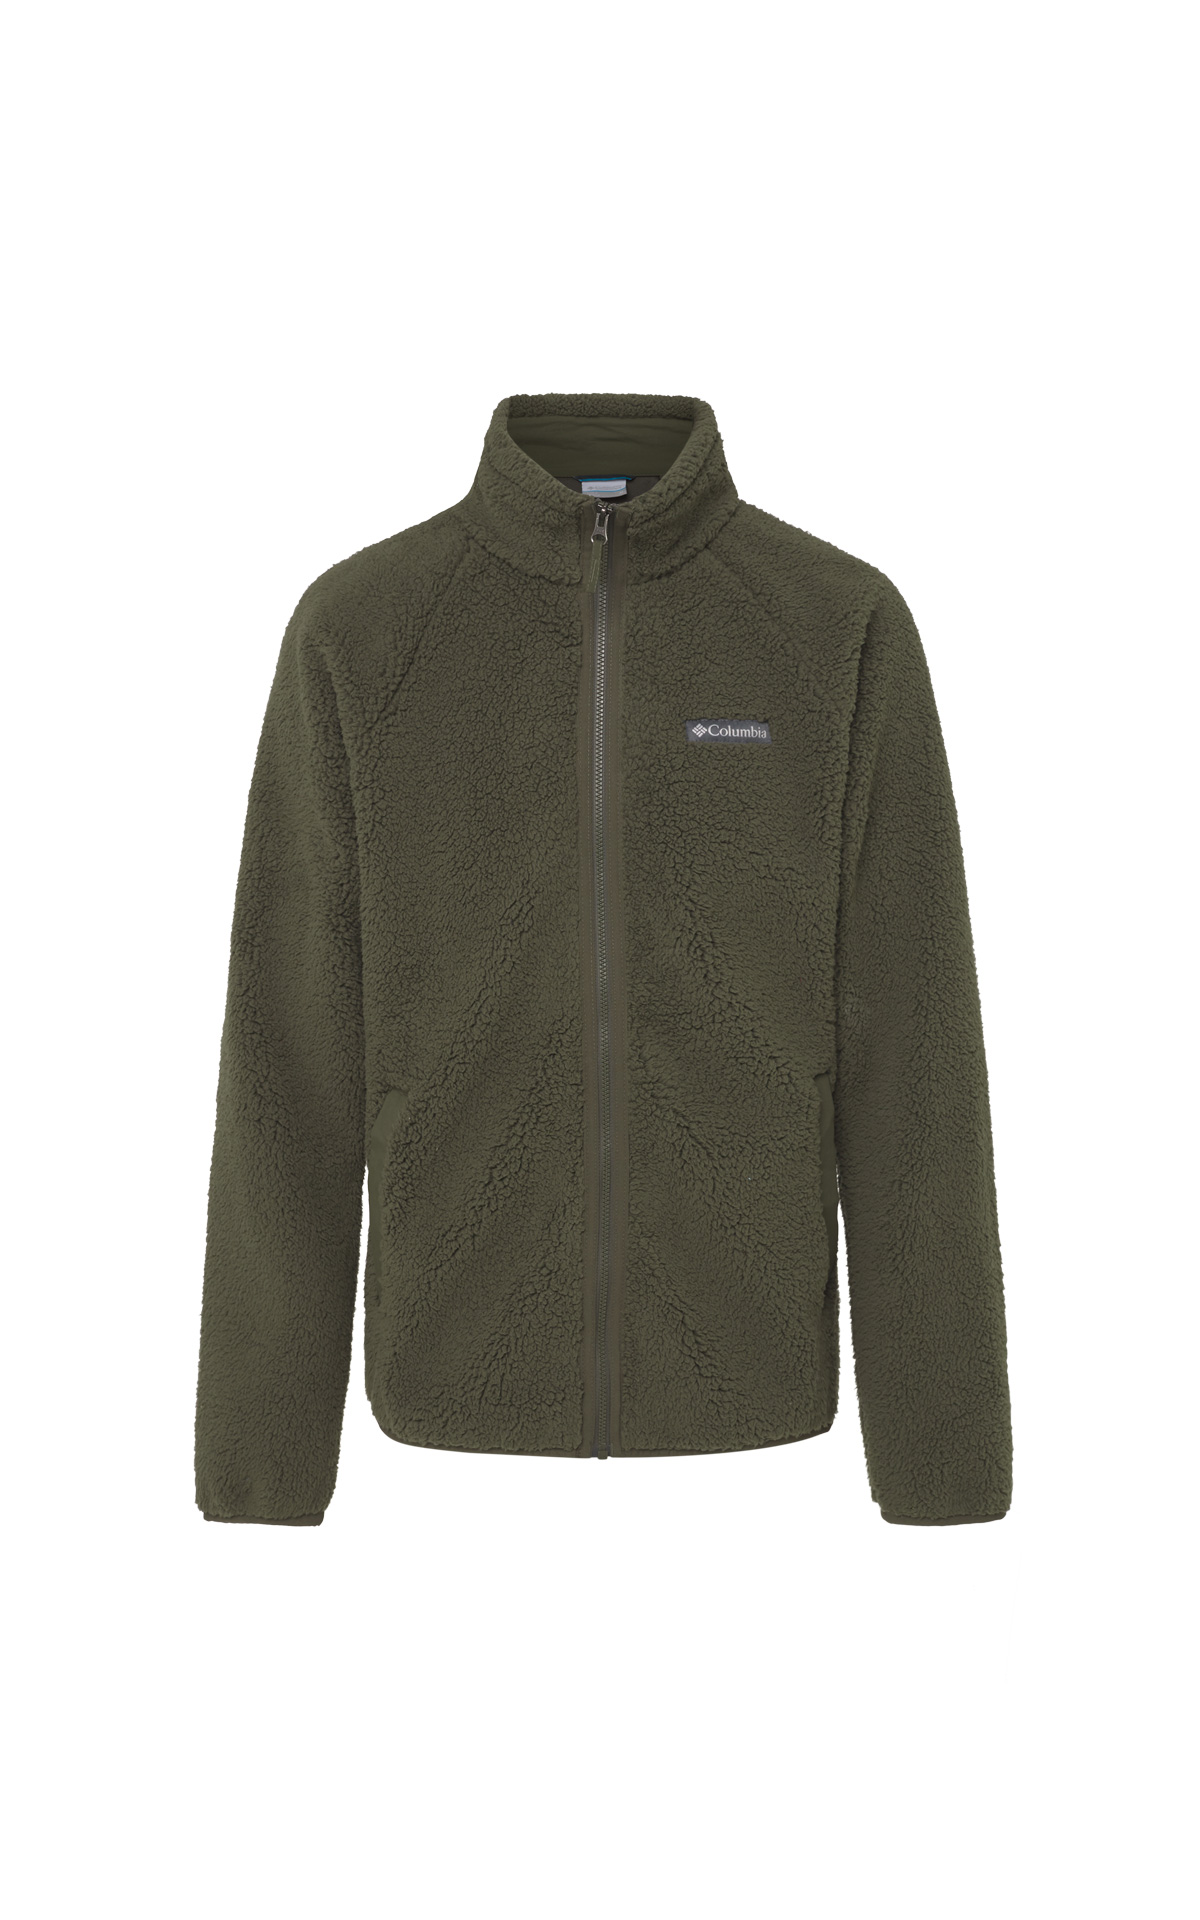 Dark green fleece jacket for men Columbia